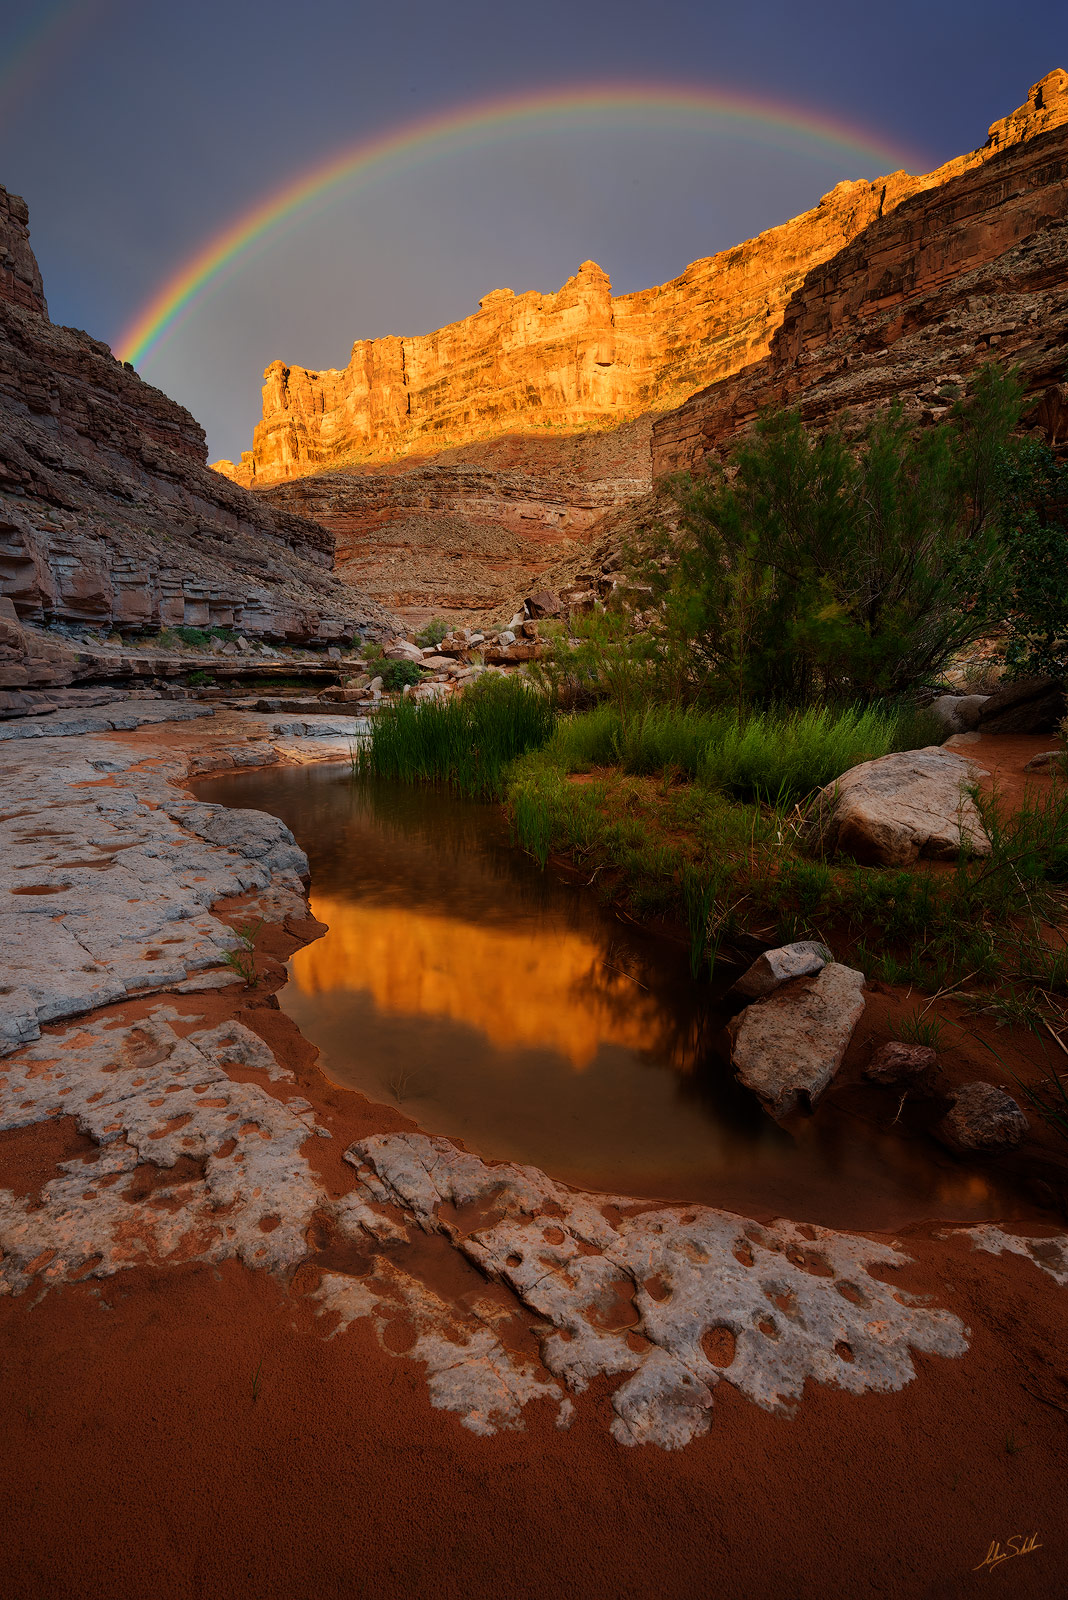 Bears Ears, Bears Ears National Monument, Canyon Country, Cedar Mesa, Pool, Rainbow, Red Rock, Reflection, San Juan River, Slickhorn Canyon, Solitude, Water, Utah, photo